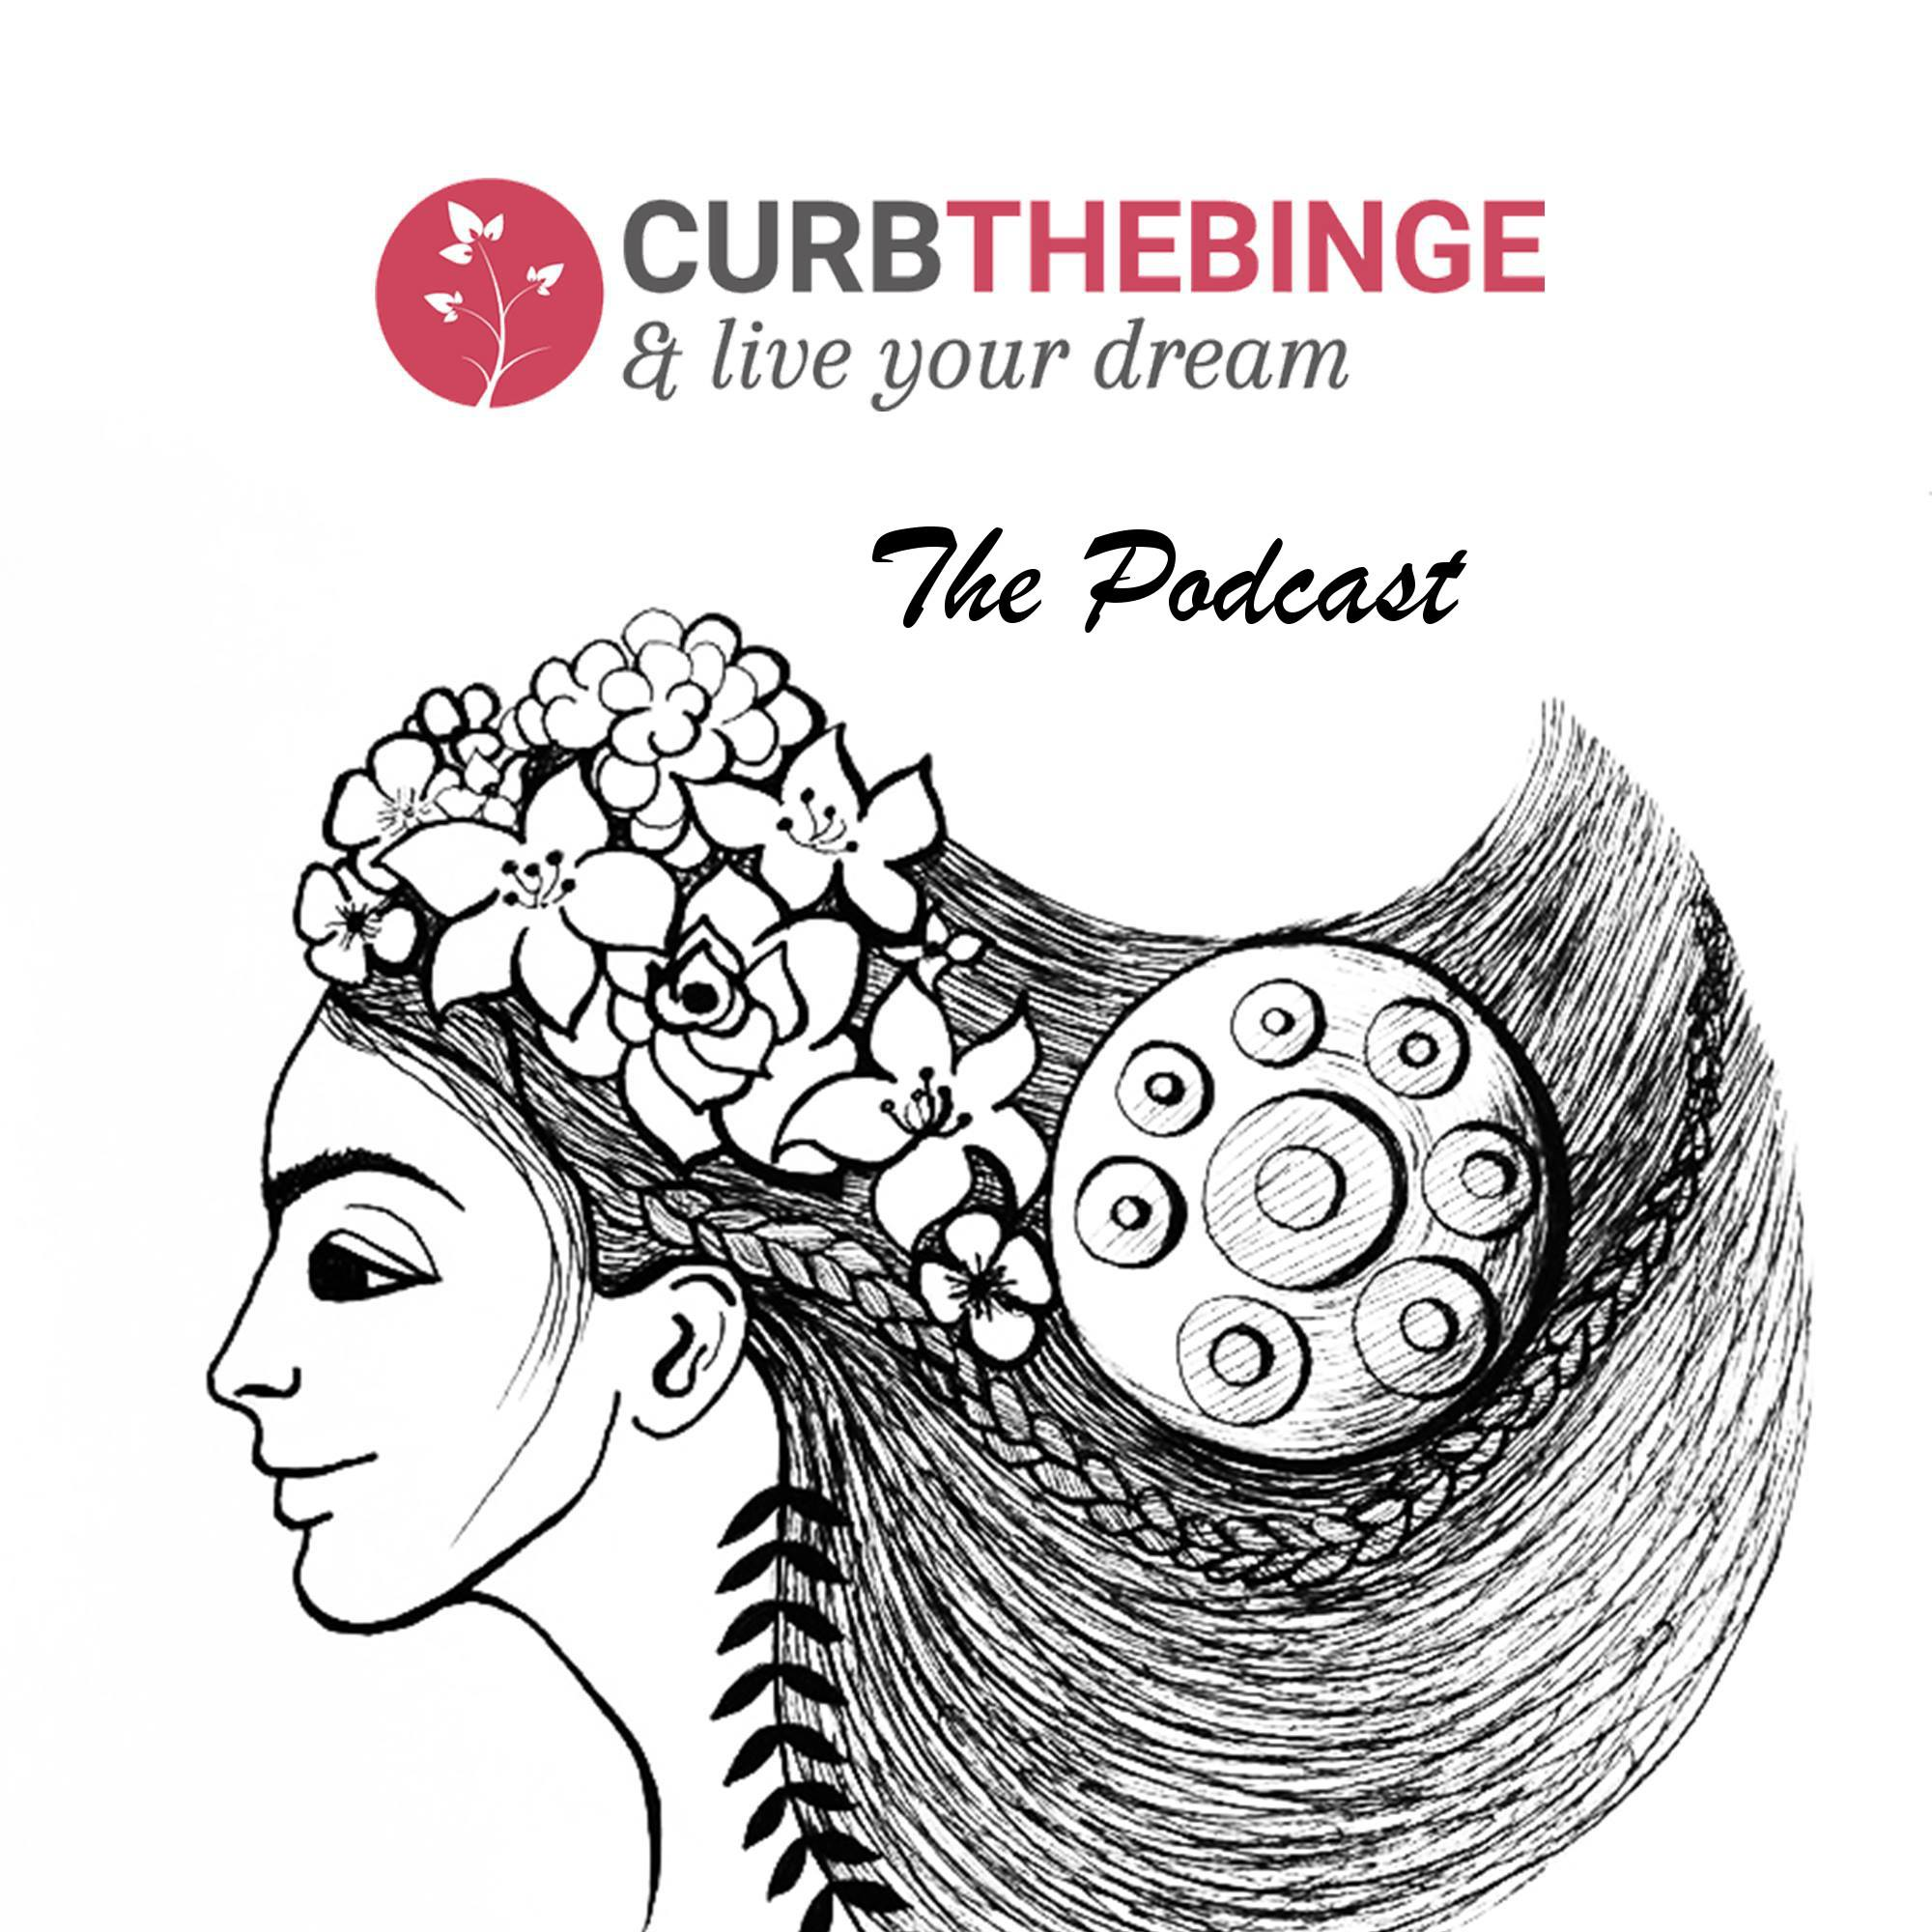 Curb the Binge: The Podcast show art